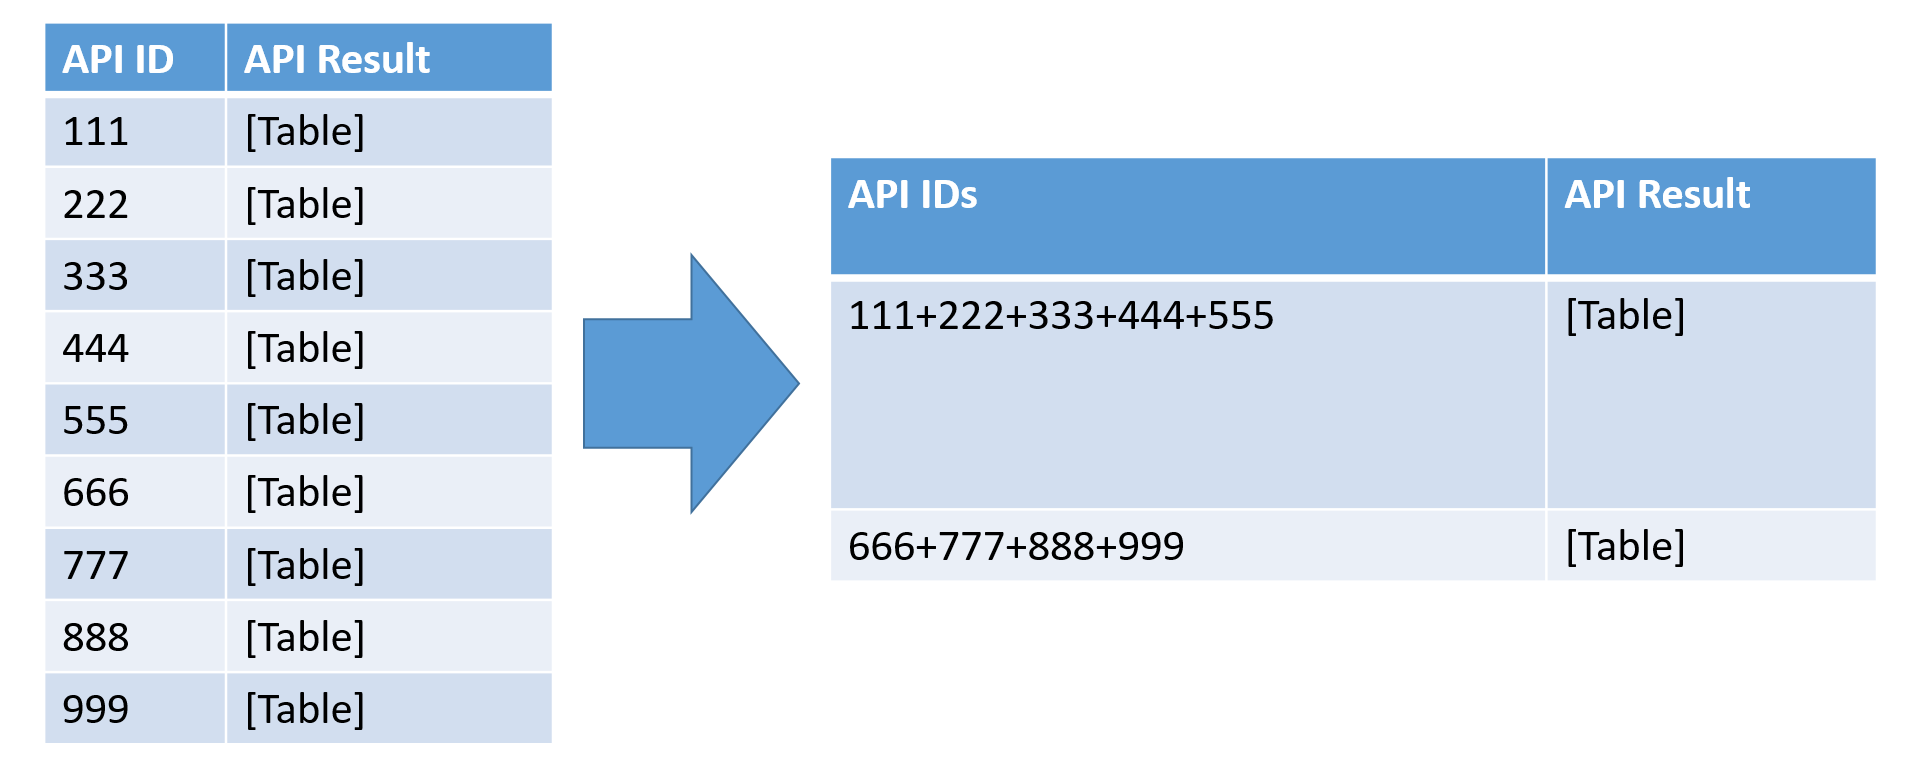 Merging multiple IDs to improve Web API Refresh time